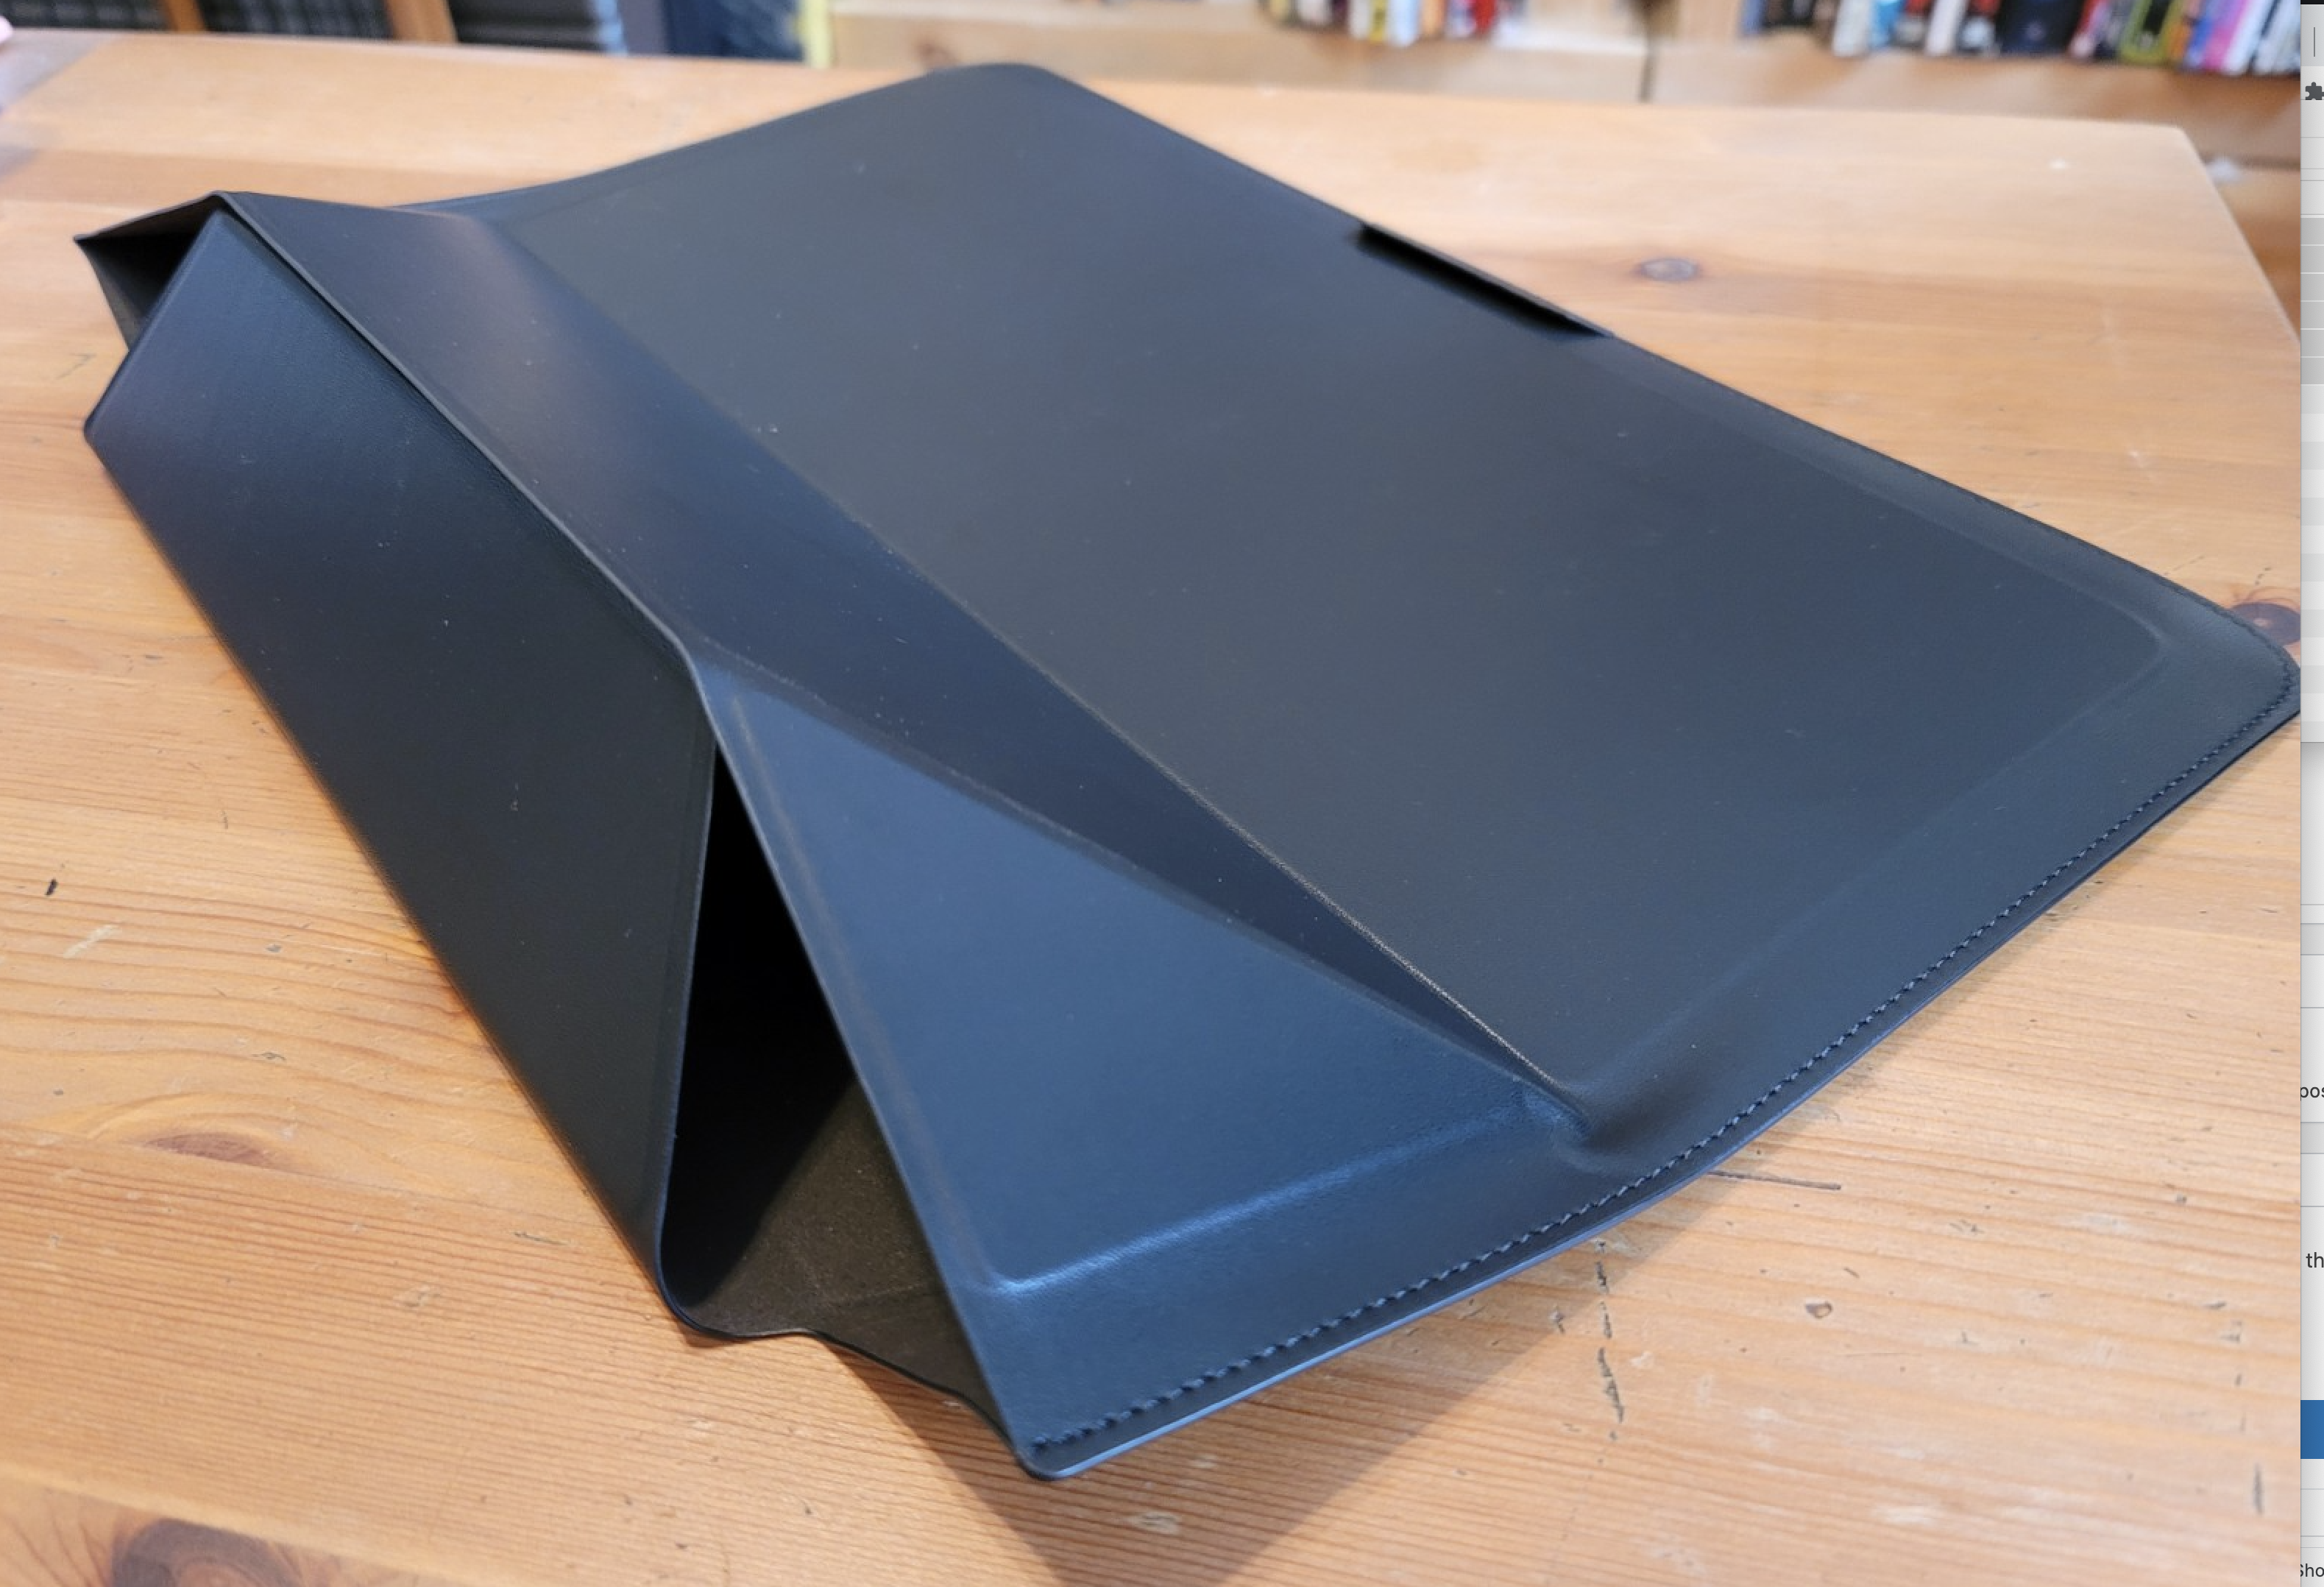 Moft is back with a clever laptop sleeve that converts into a stand